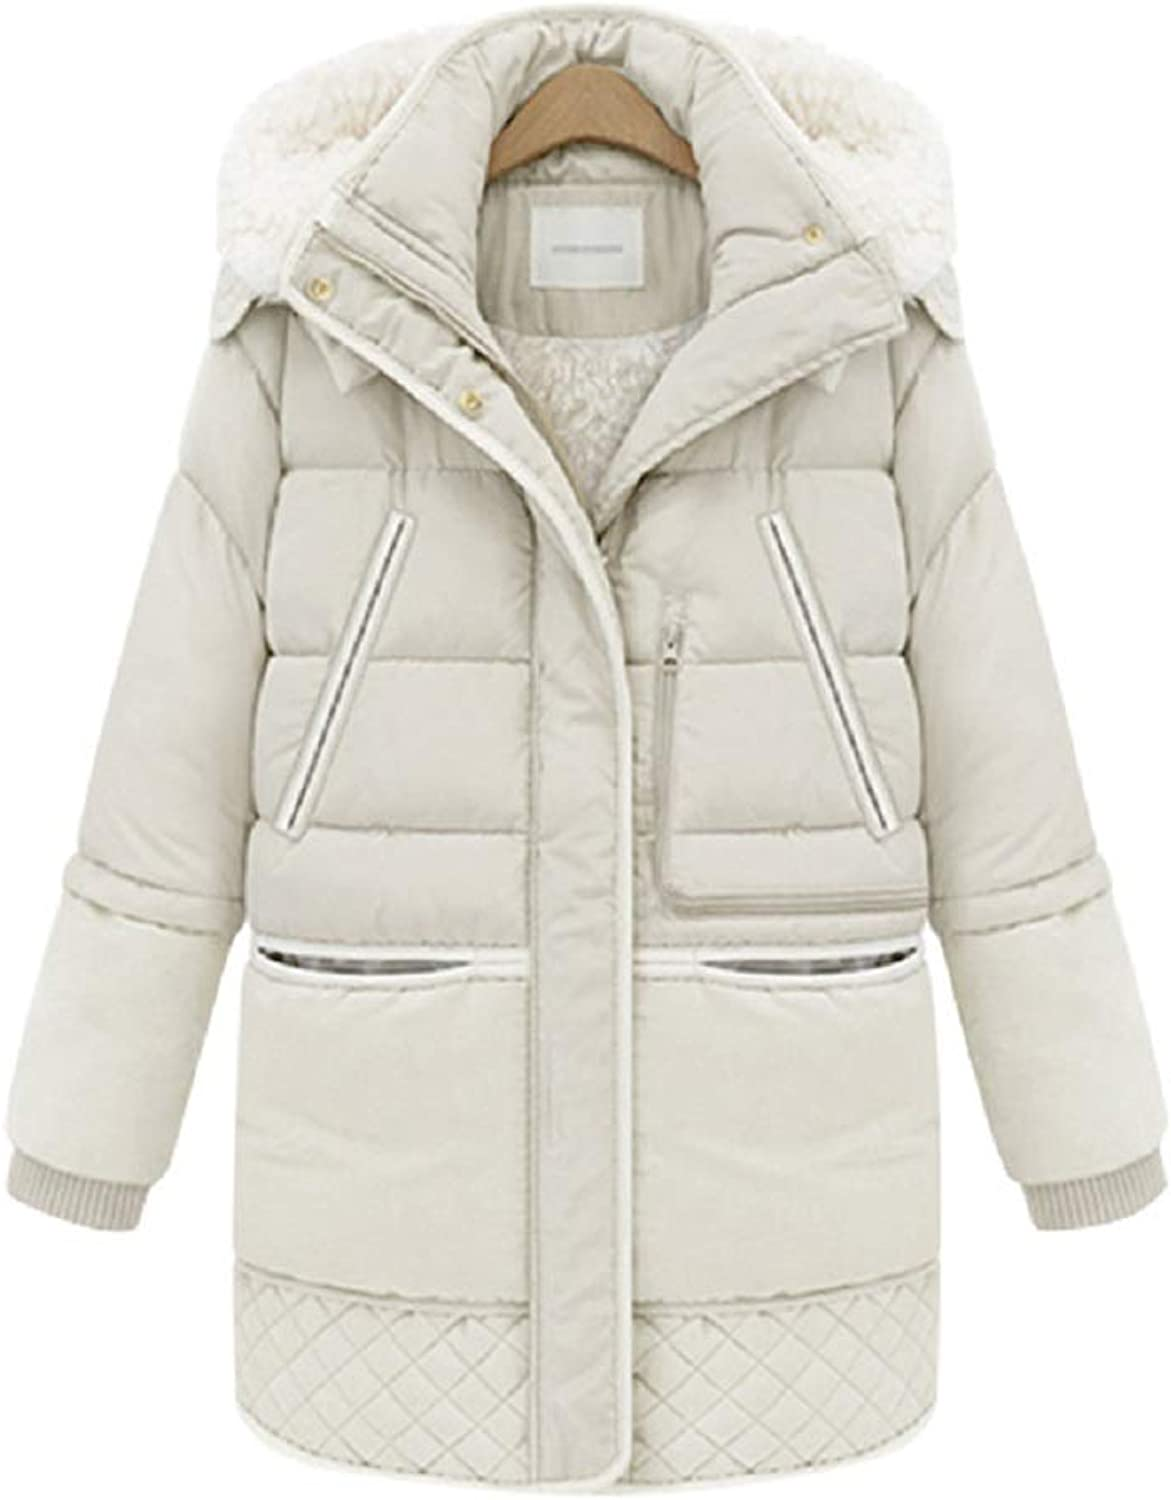 Aehoor Womens Long Down Jacket Hooded Jacket Thick Winter Soft Warm 90% Duck Down